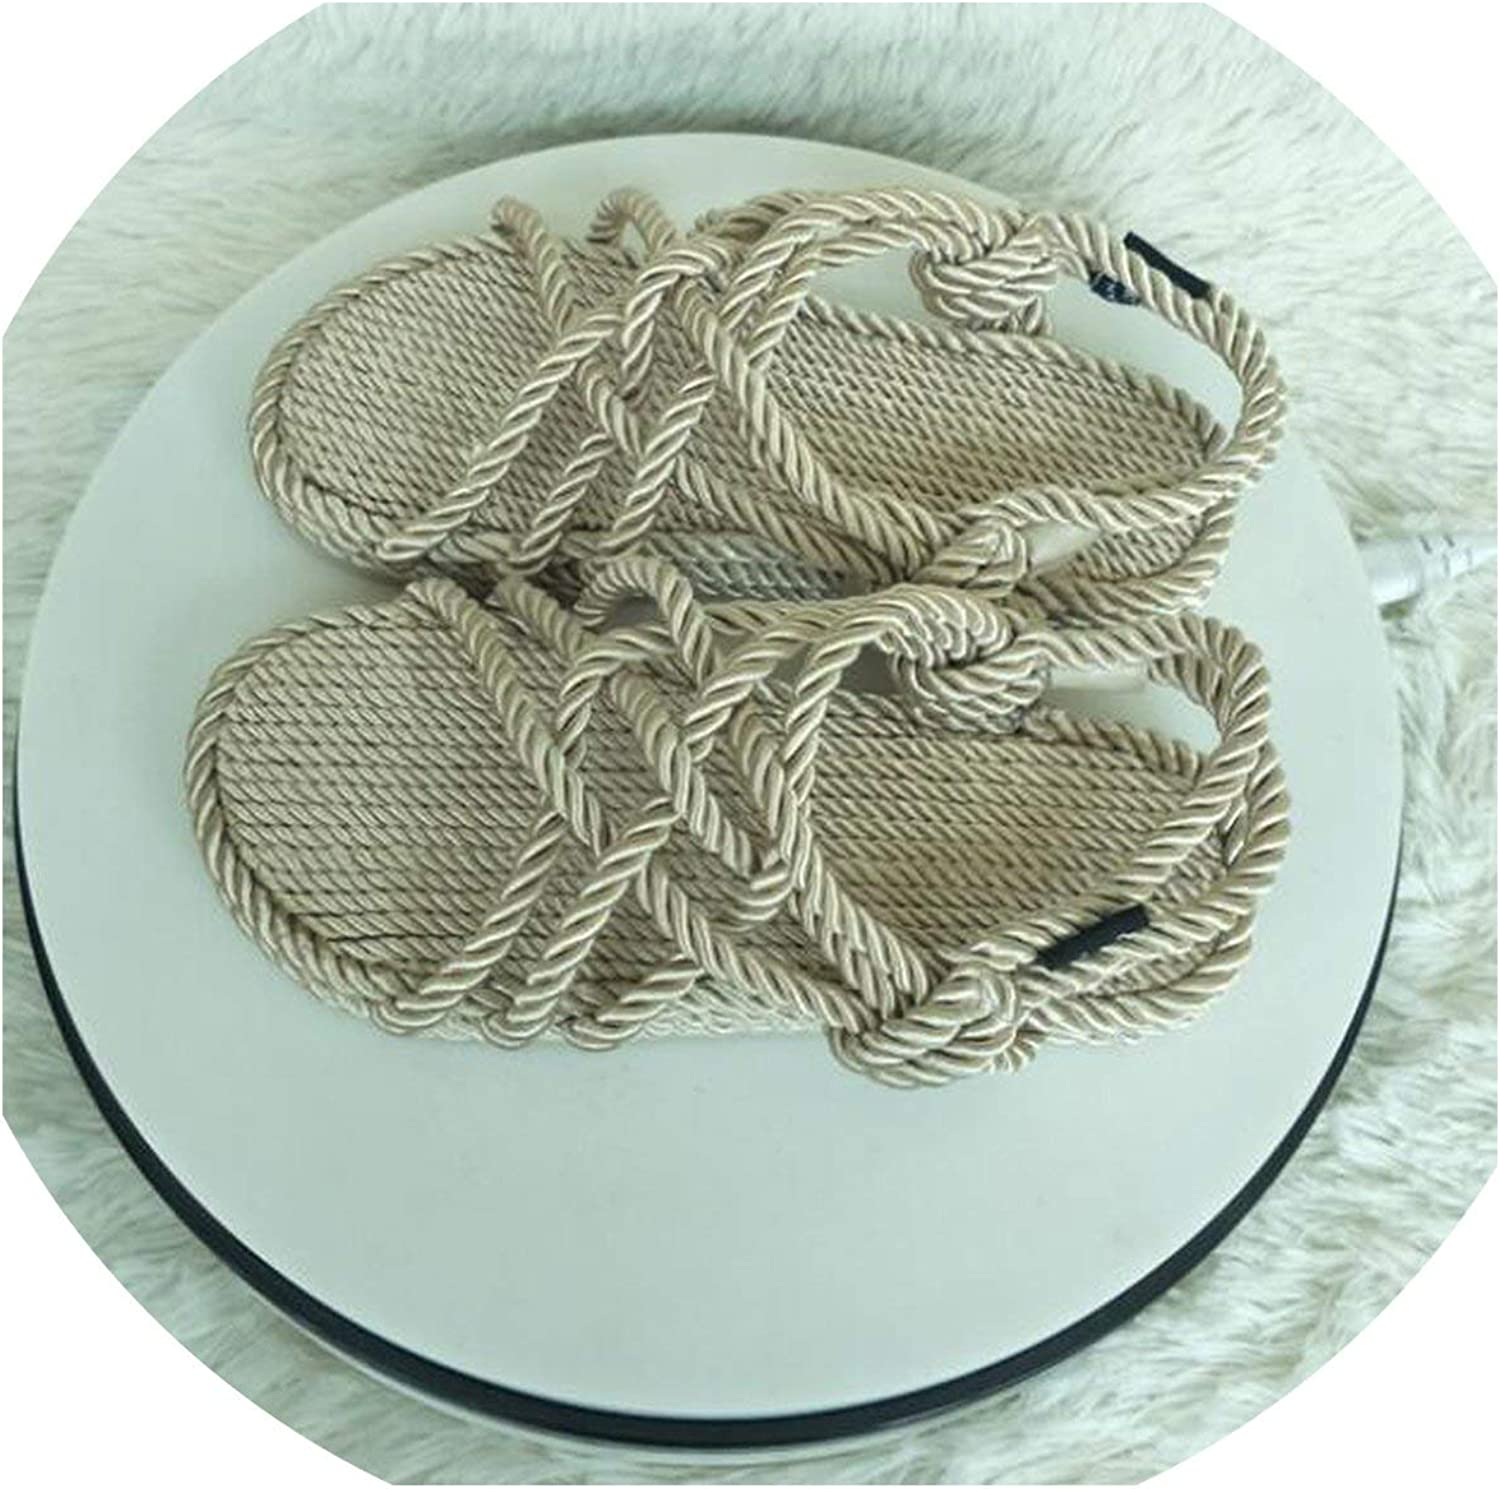 MiniYoo Straw Lazy shoes Women Flat Fiberflax Hand Woven Sandals Peep Toe Beach shoes Twine Cane Knot Rome shoes